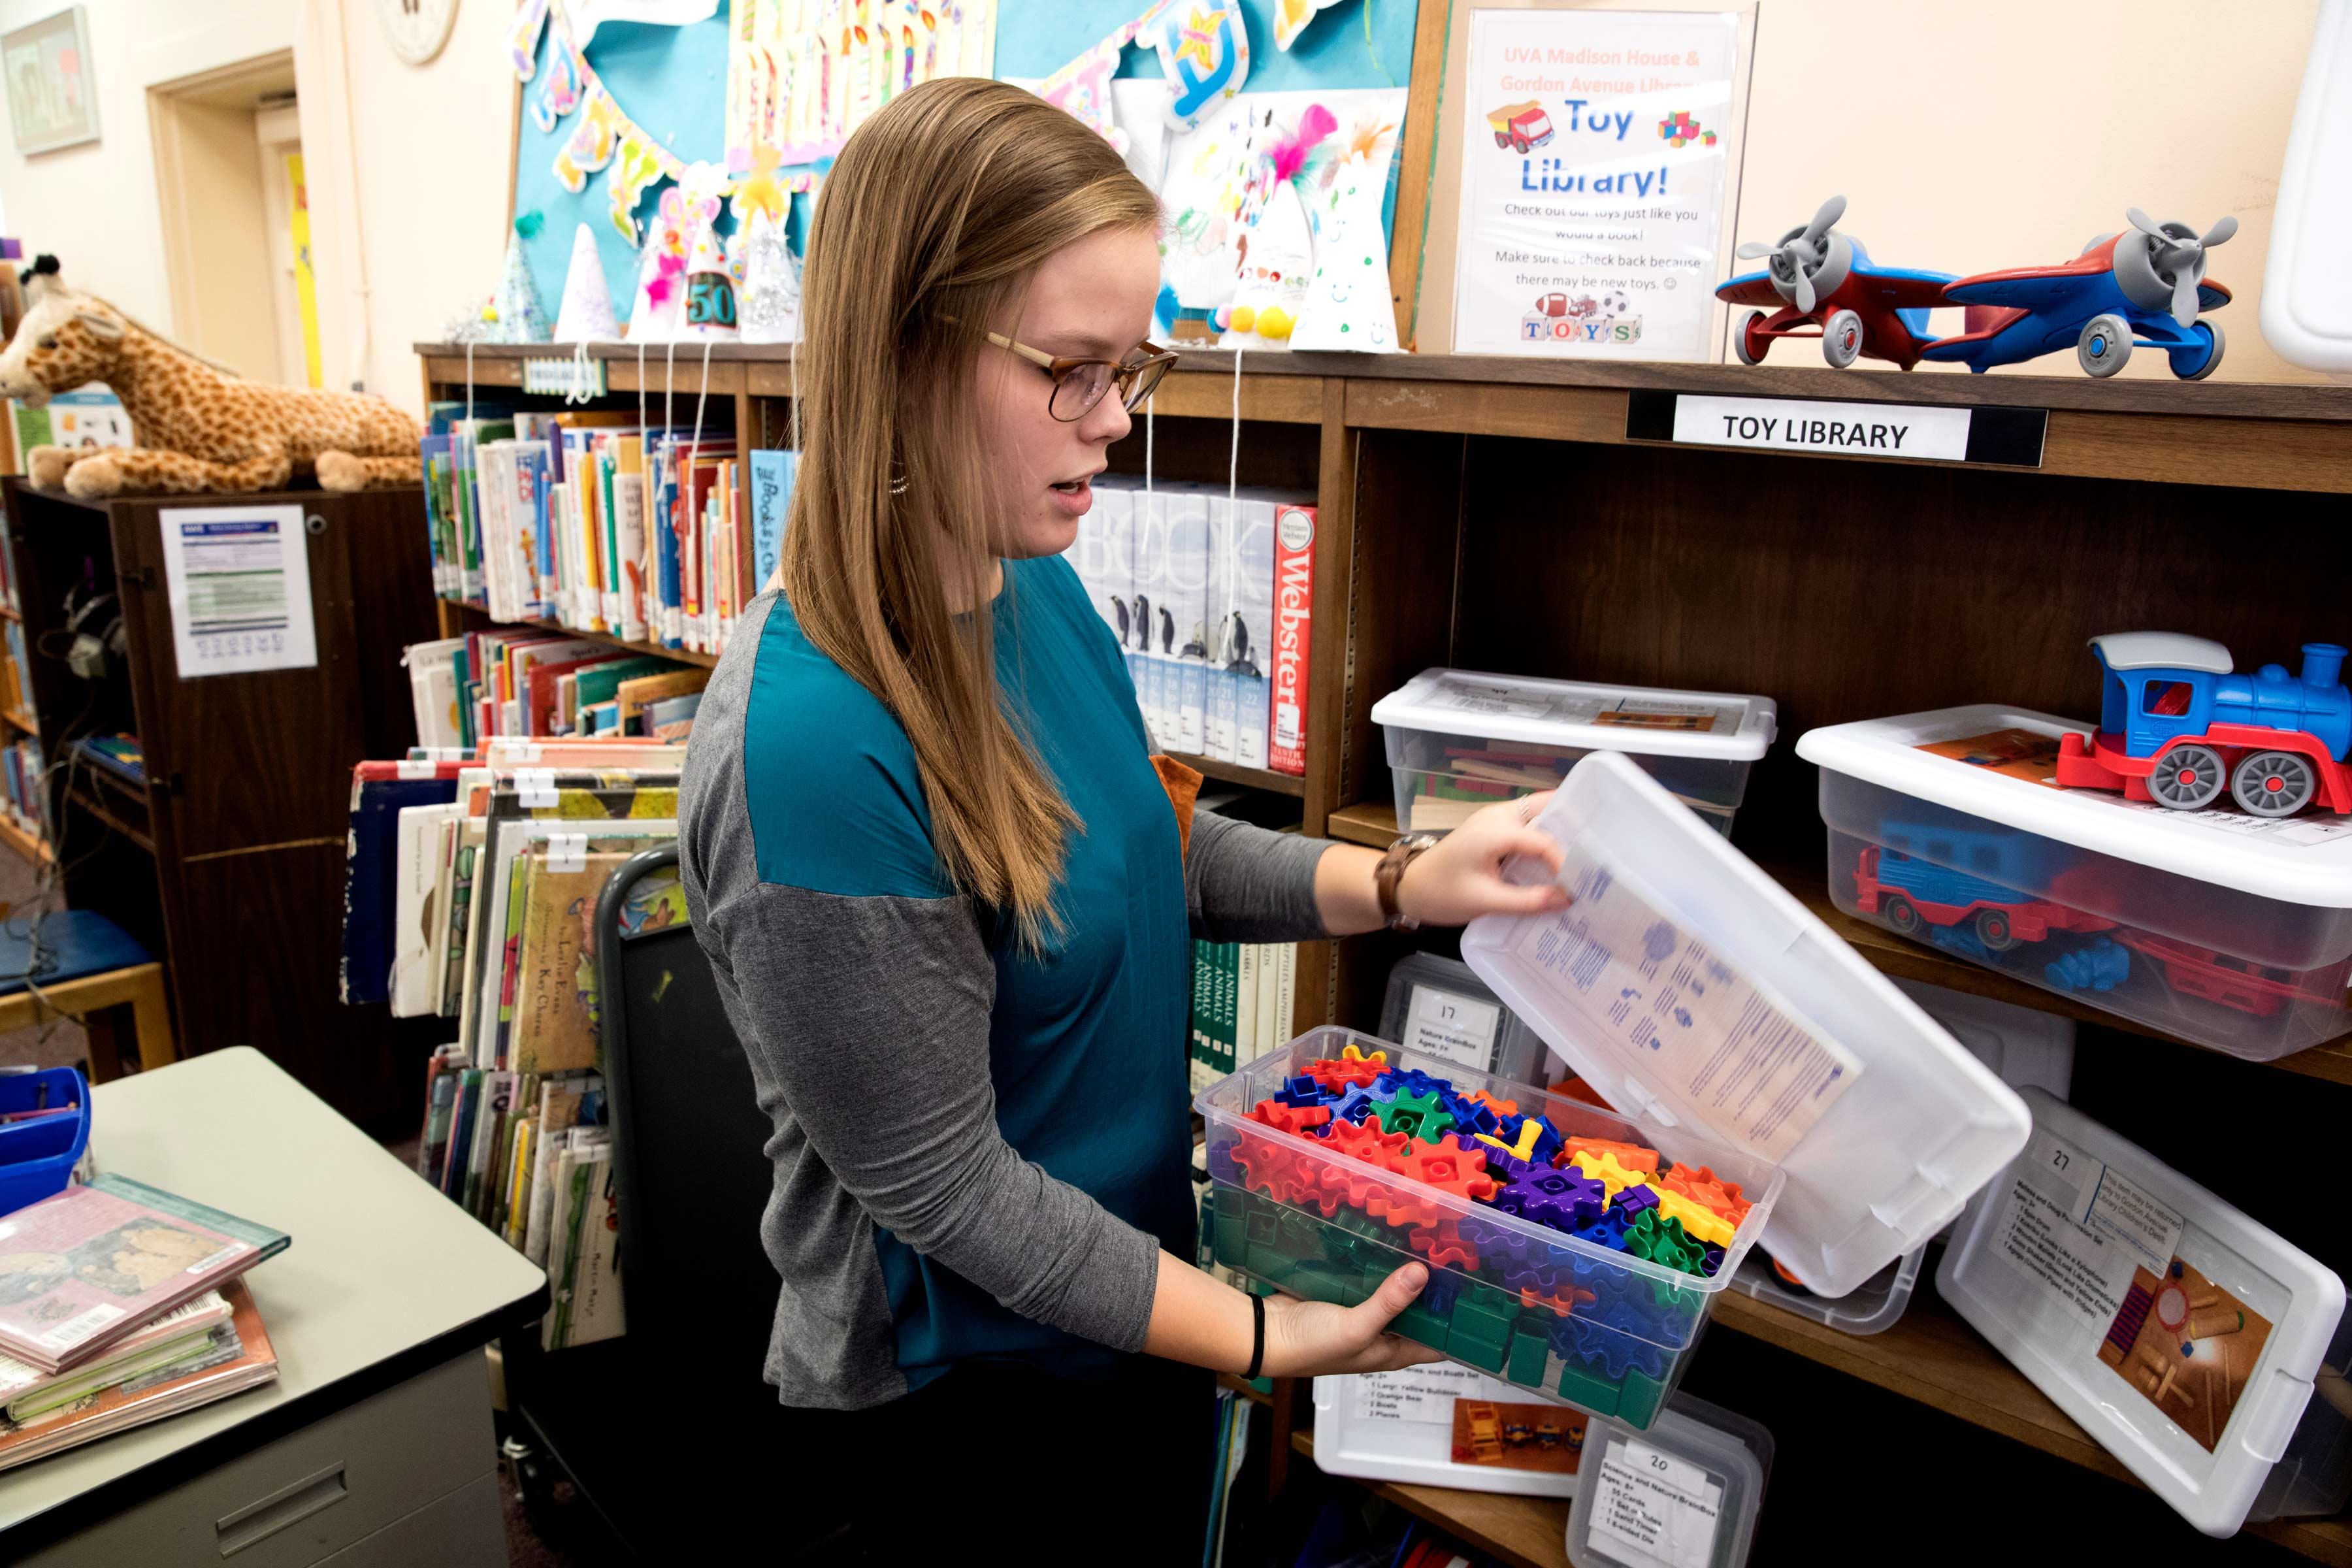 UVA student and program director Madison Lewis shows off the toy library.